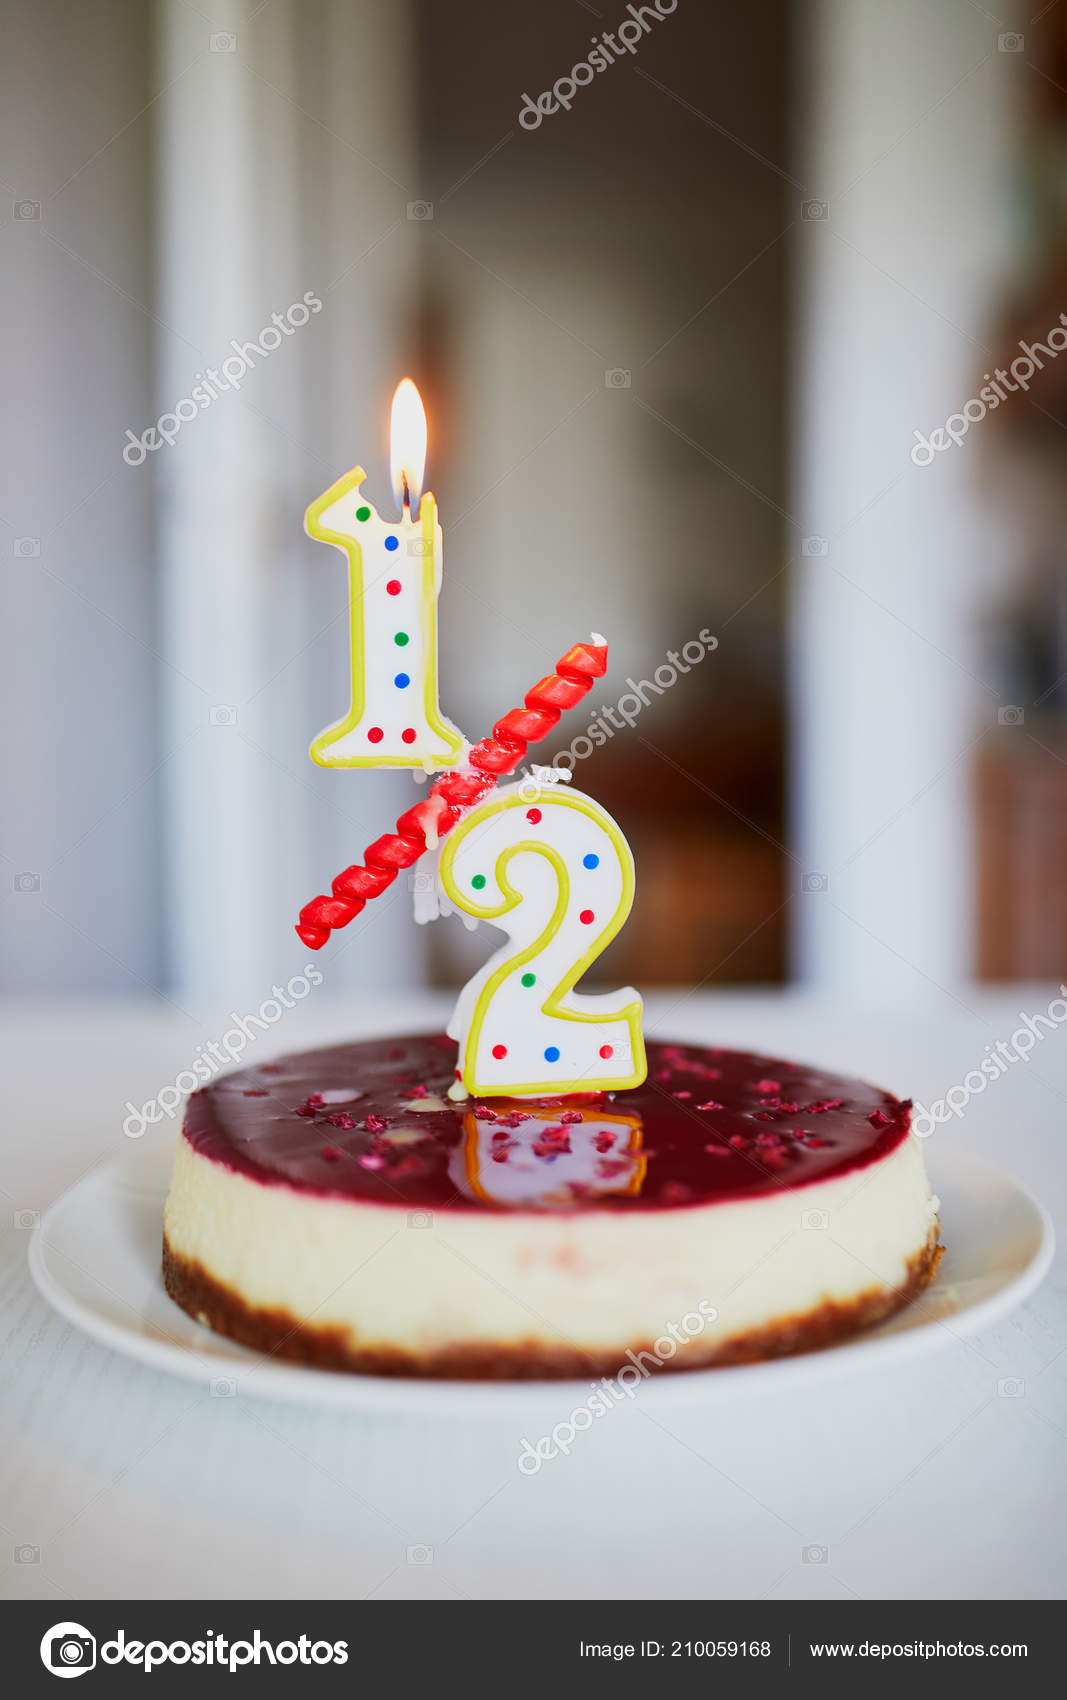 Birthday Cake With Candle On It Creative Way To Celebrate Six Month Of A Baby Anniversary In Form Decimal Meaning Half Year Photo By